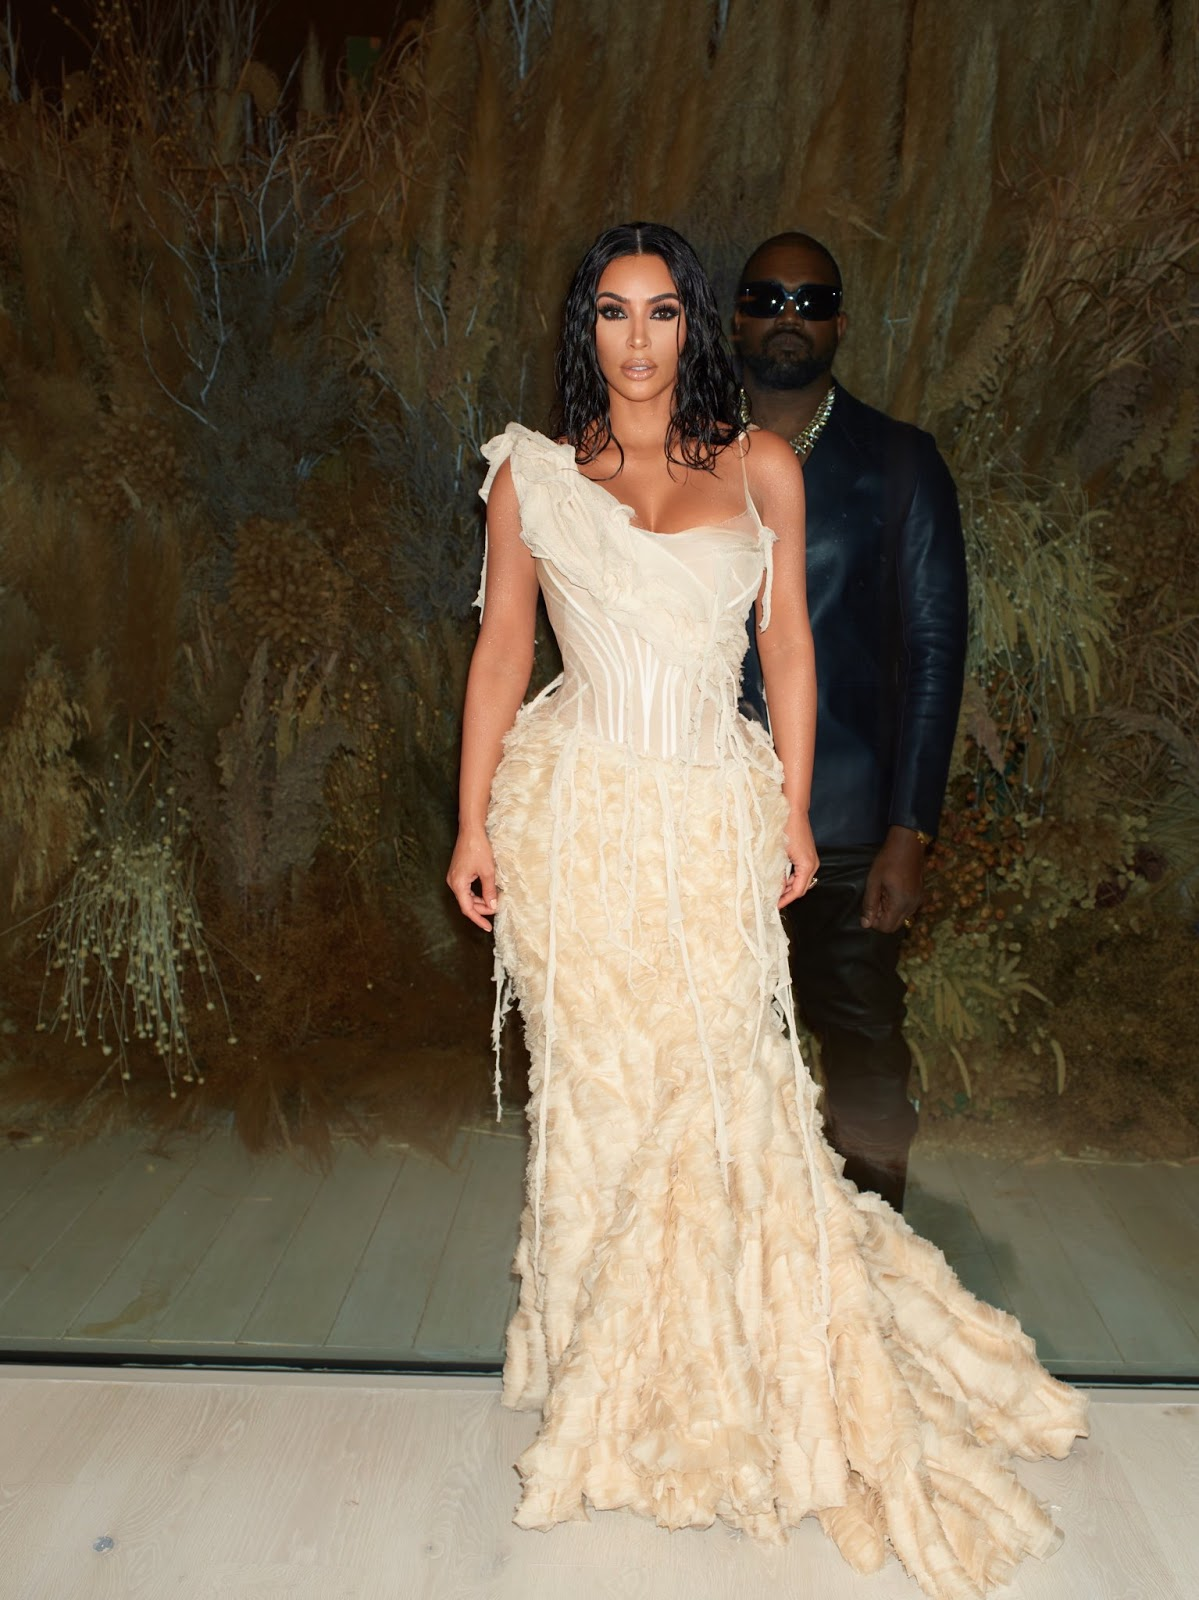 Kim Kardashian and Kanye West Take On the 2020 Oscars in Style